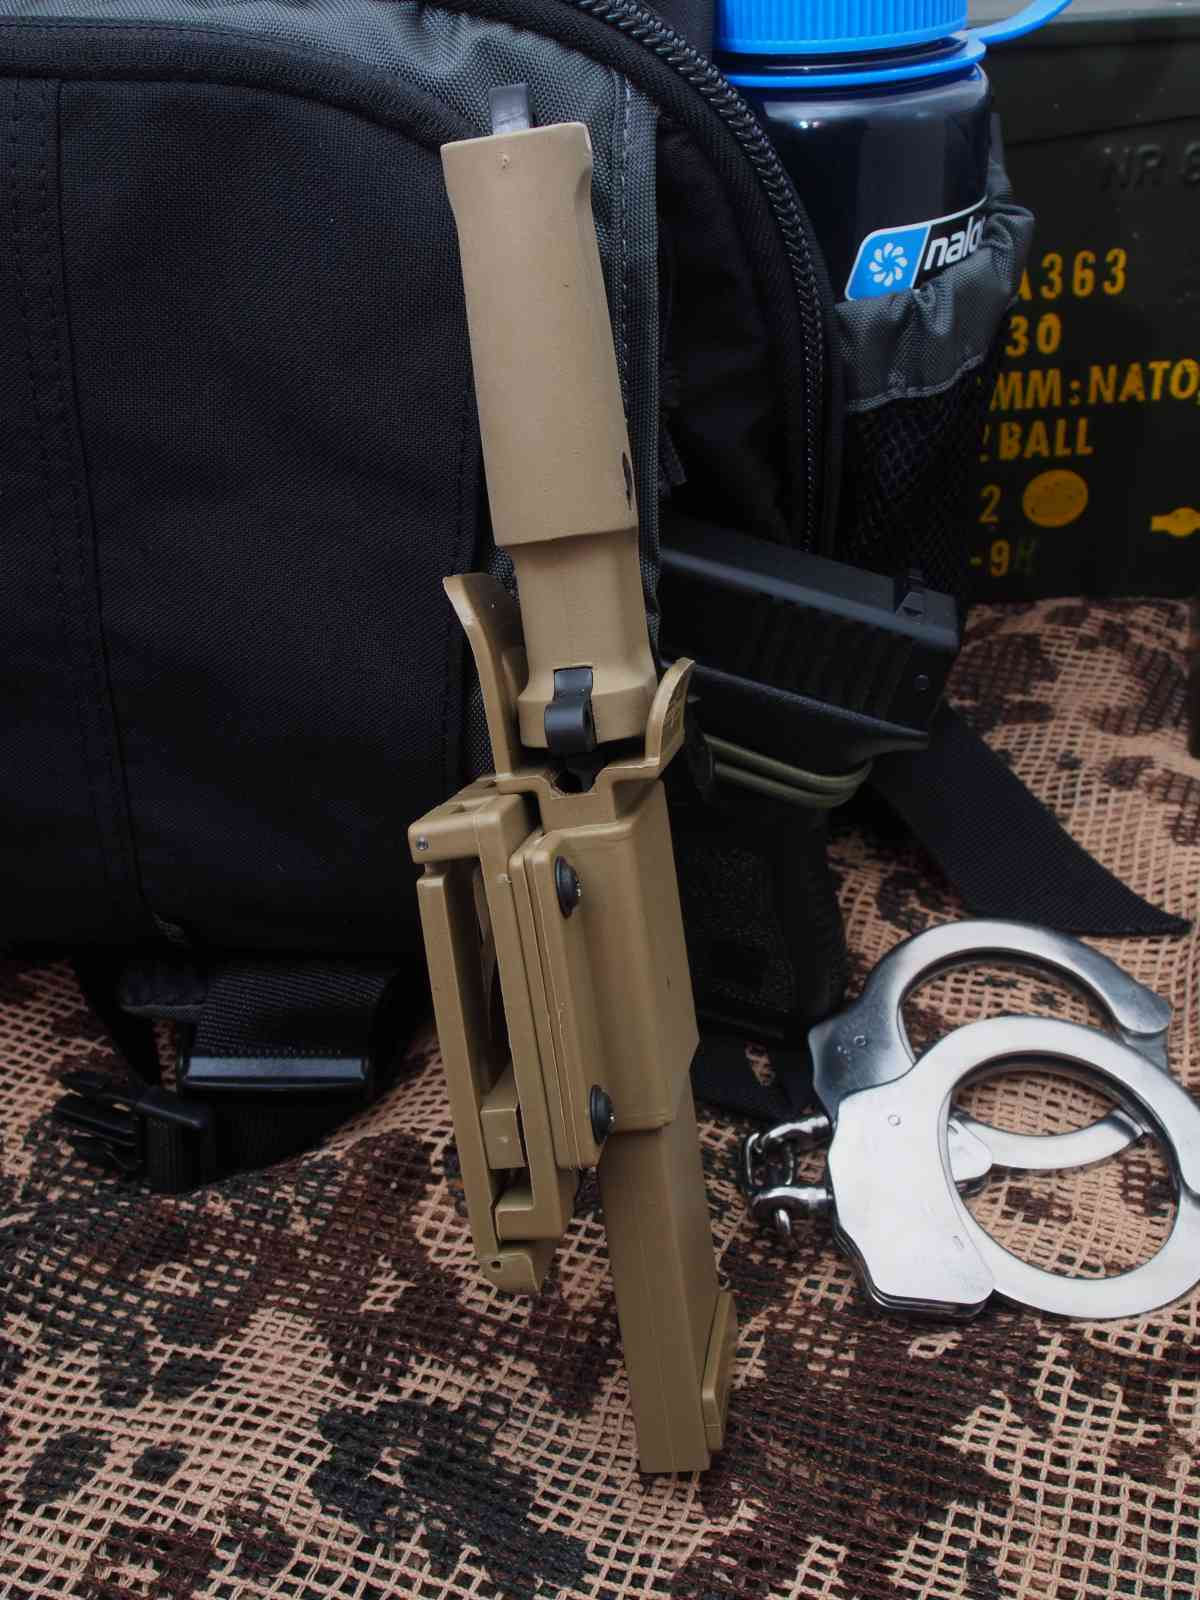 Extrema Ratio Col Moschin Compact Desert Warfare 5